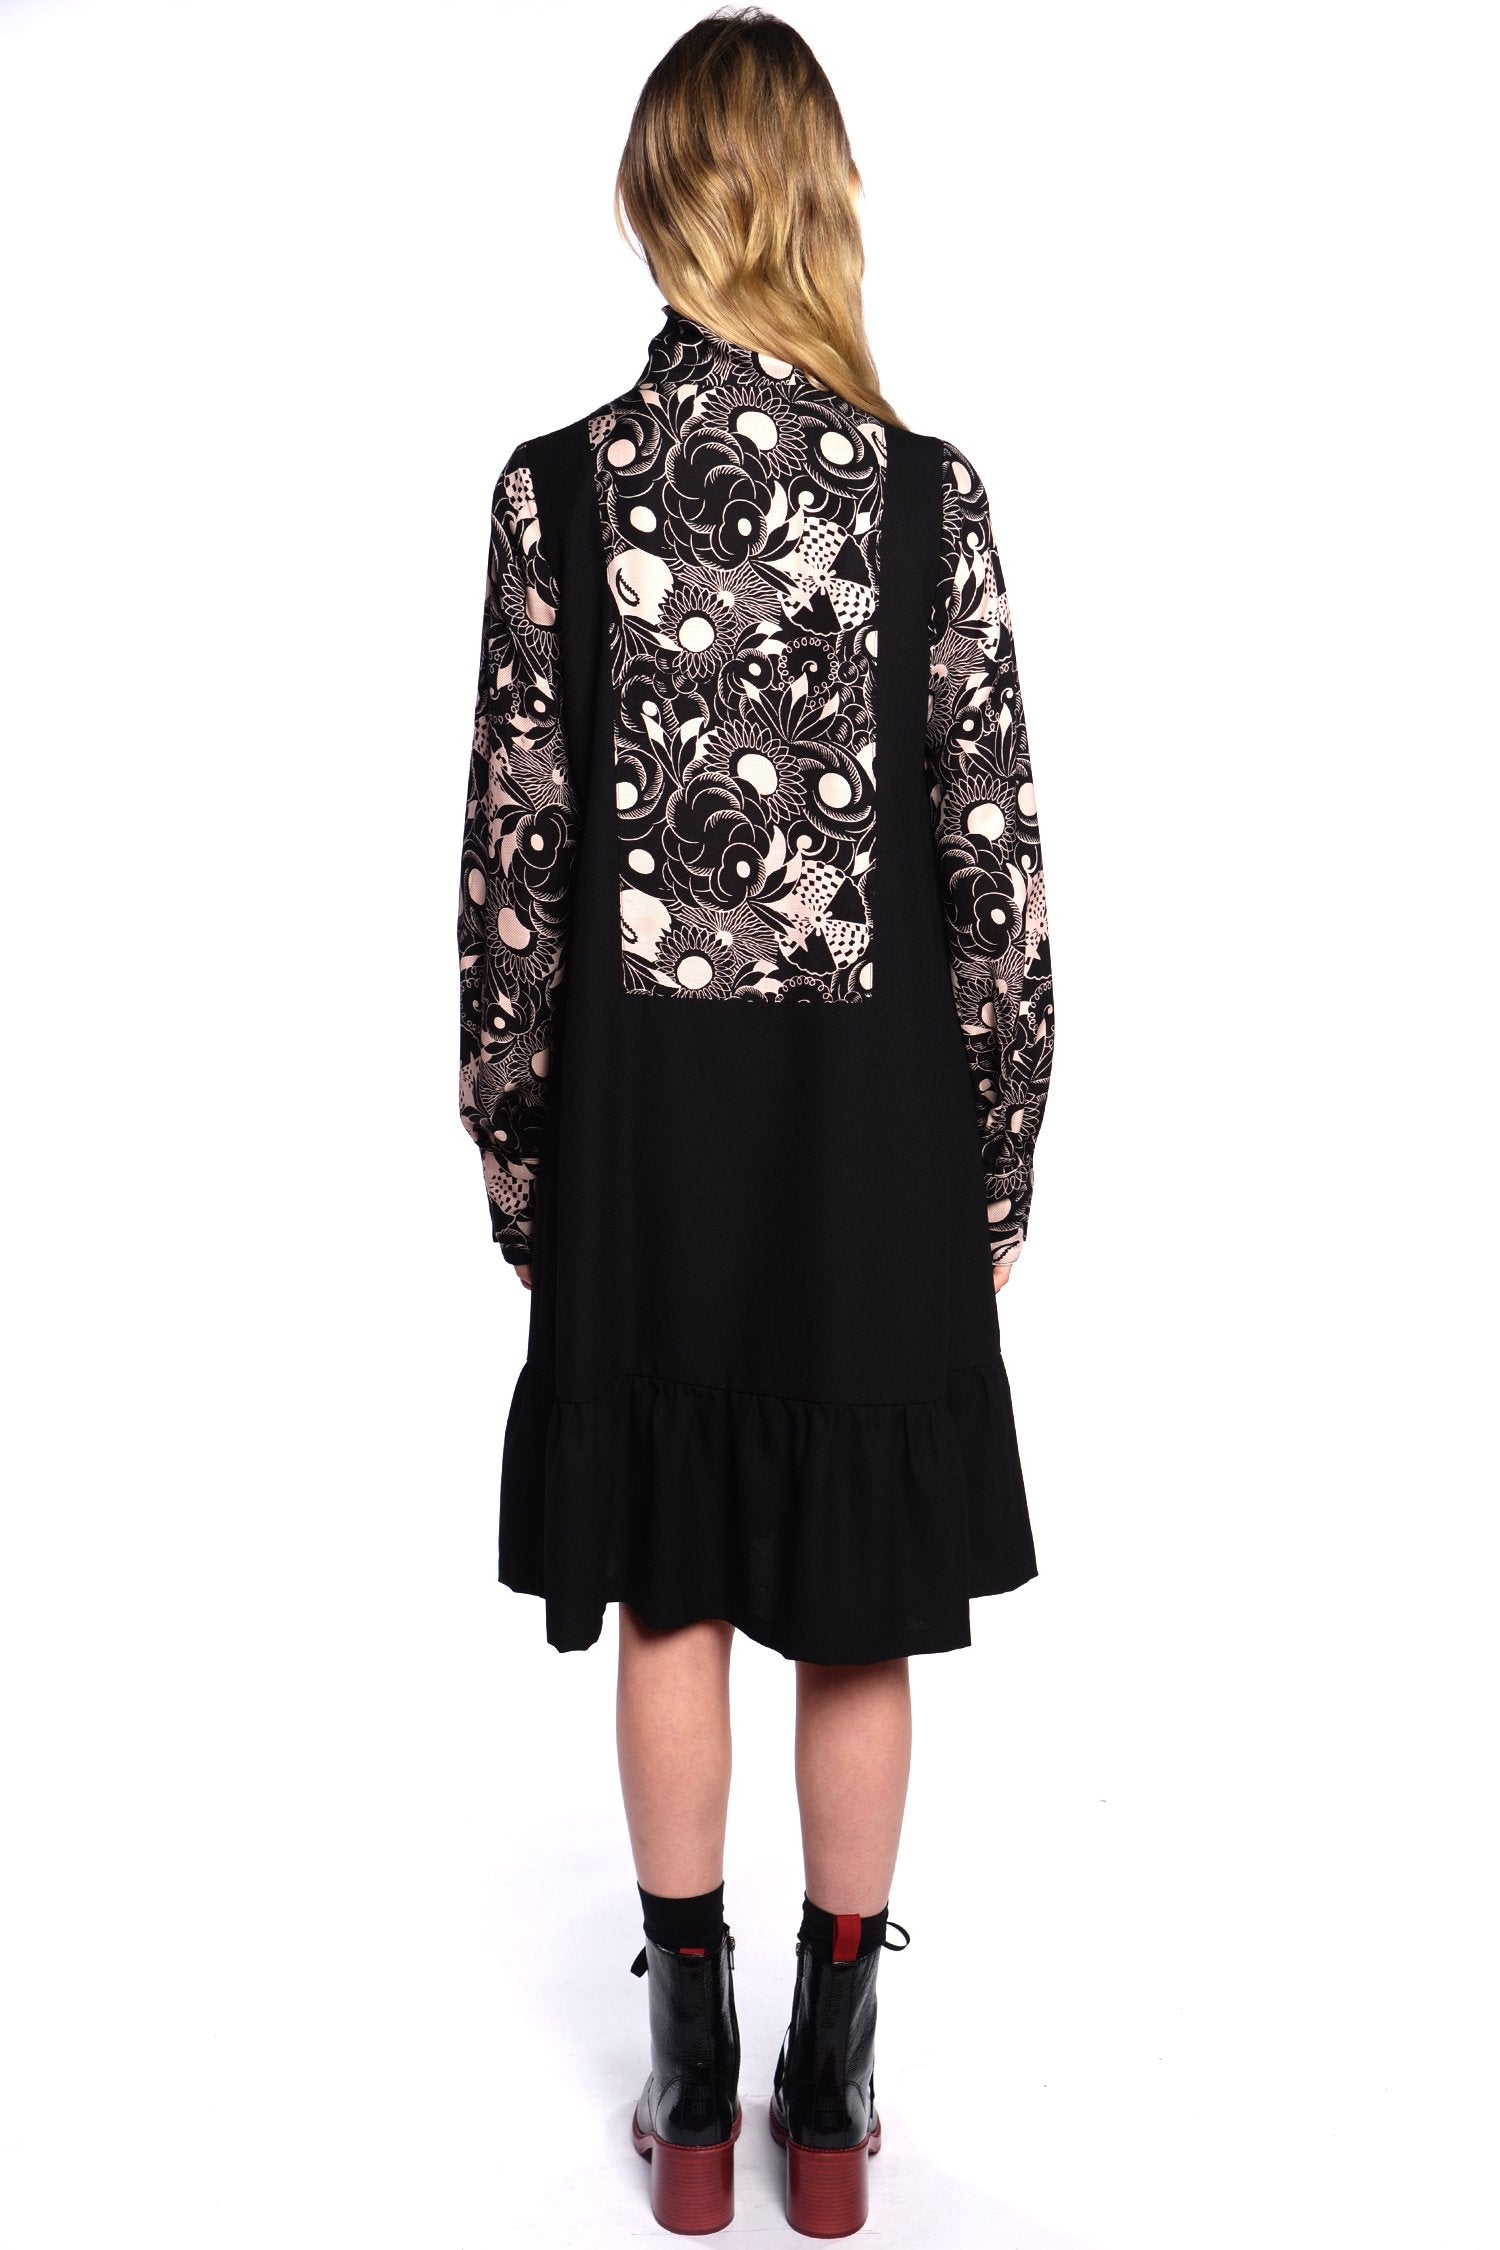 Swirling Botanicals Dress - Anna Sui